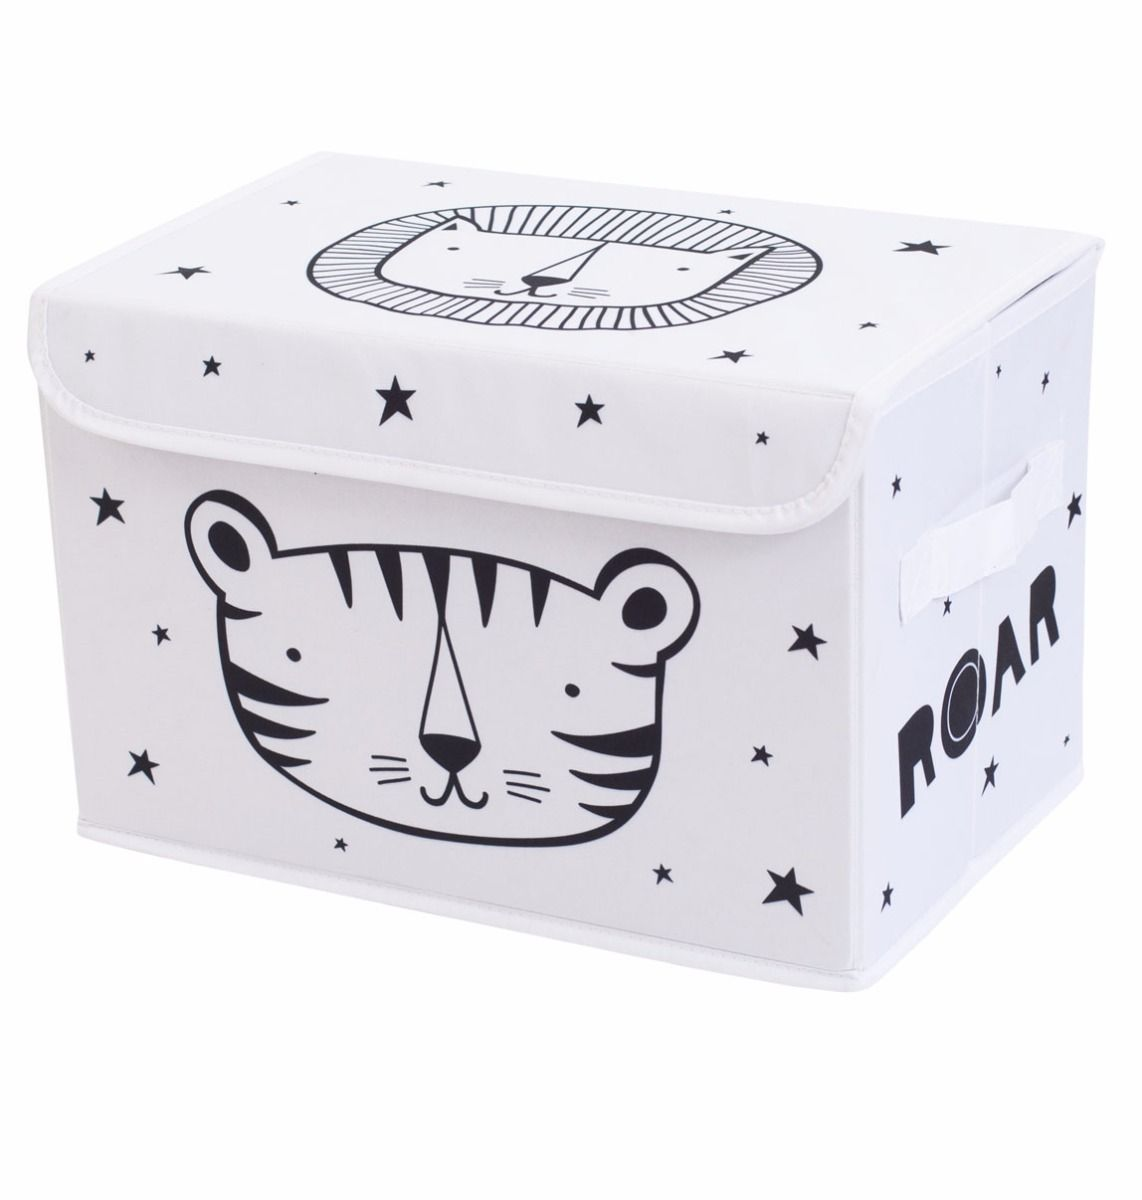 Tap Image To Enlarge. Roar Pop Up Storage Box